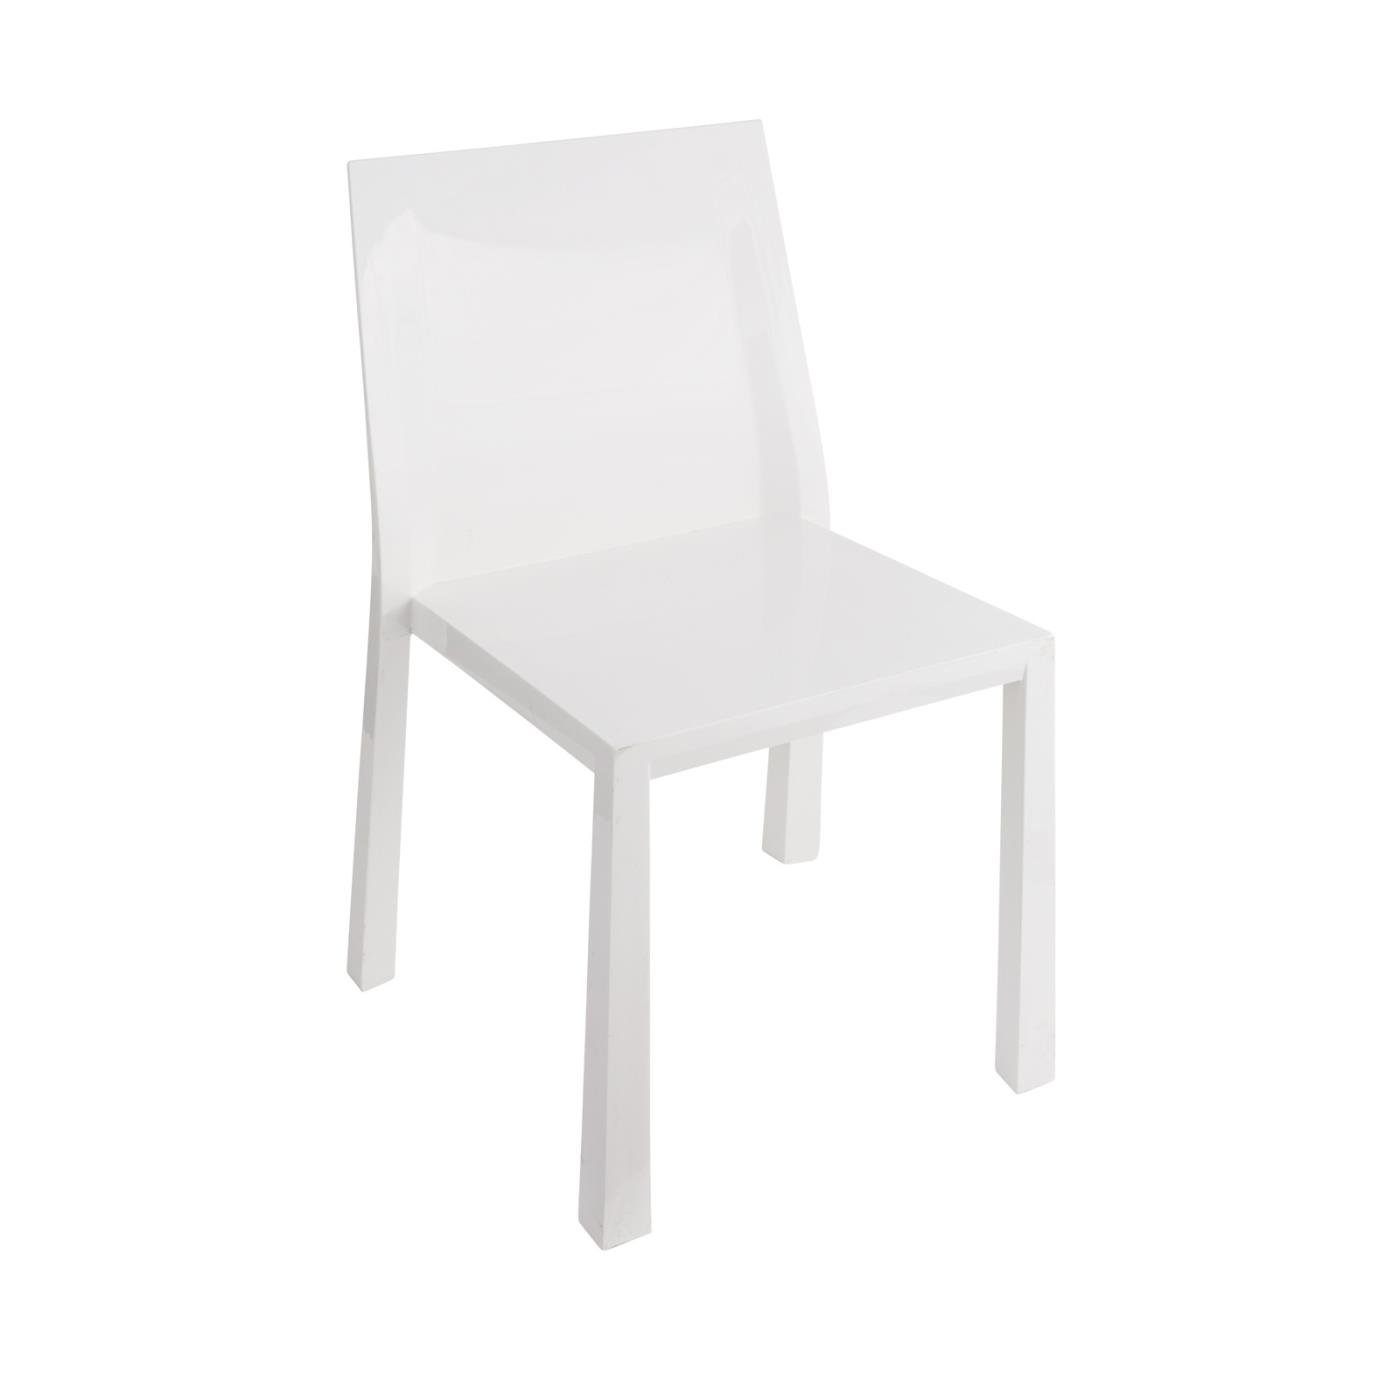 Bell Chair - White